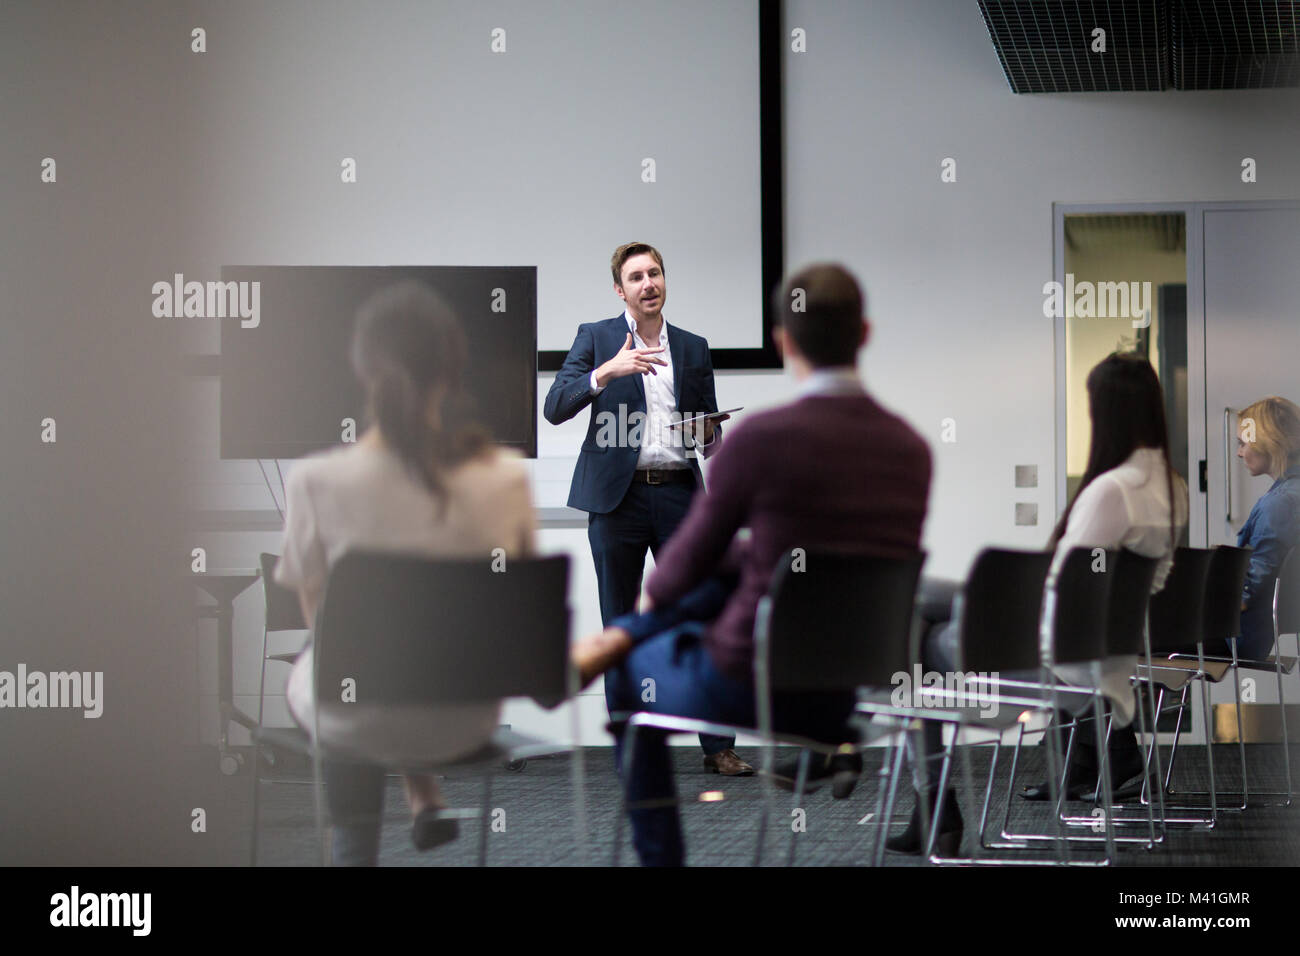 Business training conference - Stock Image